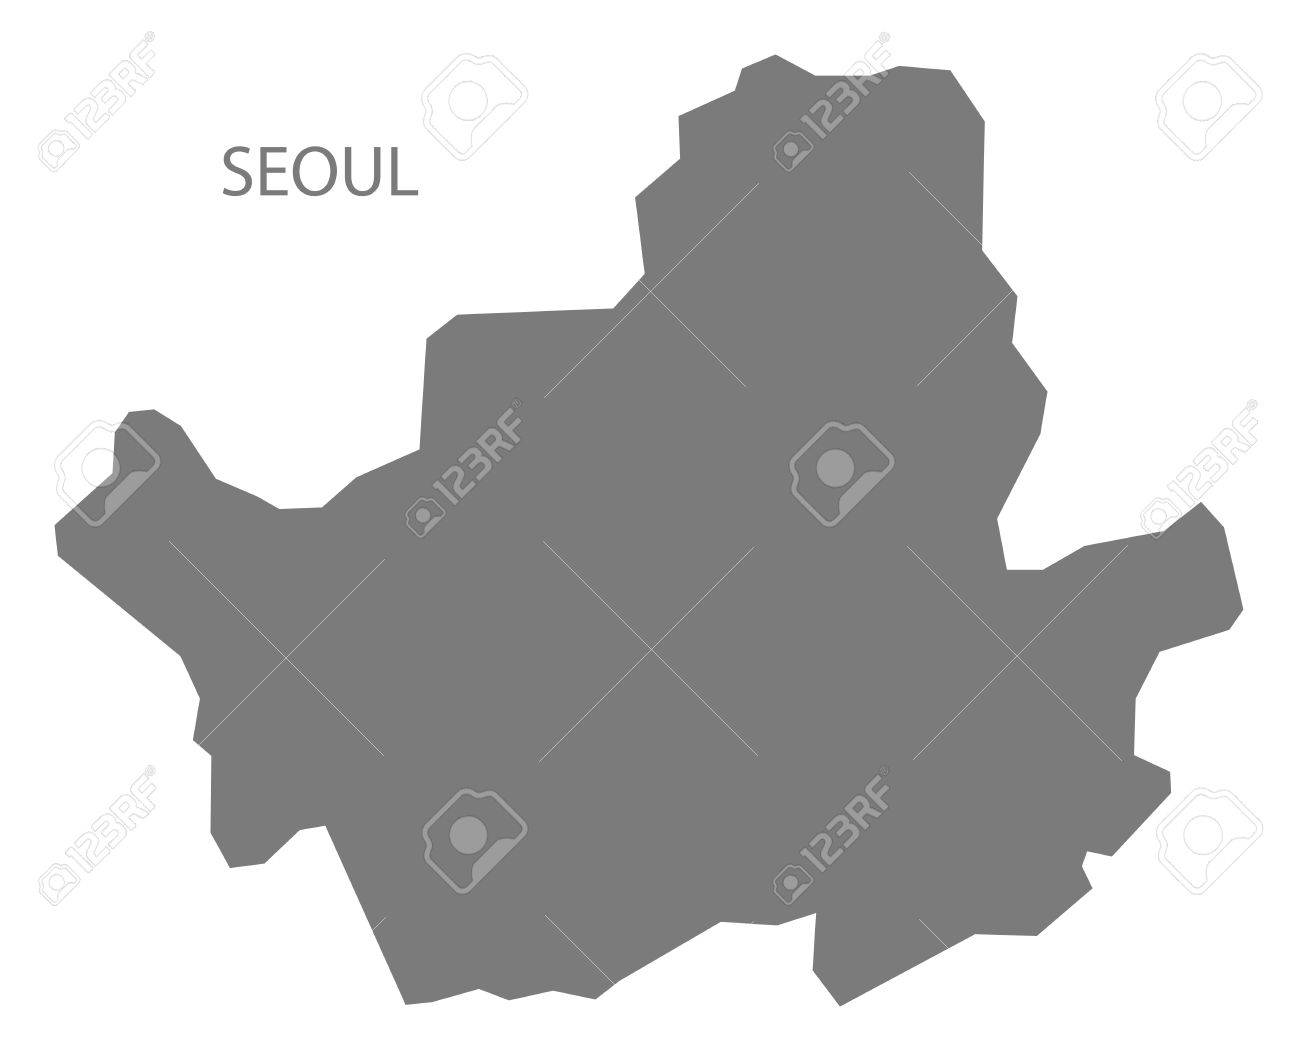 Seoul South Korea Map In Grey Royalty Free Cliparts Vectors And - South korea map vector